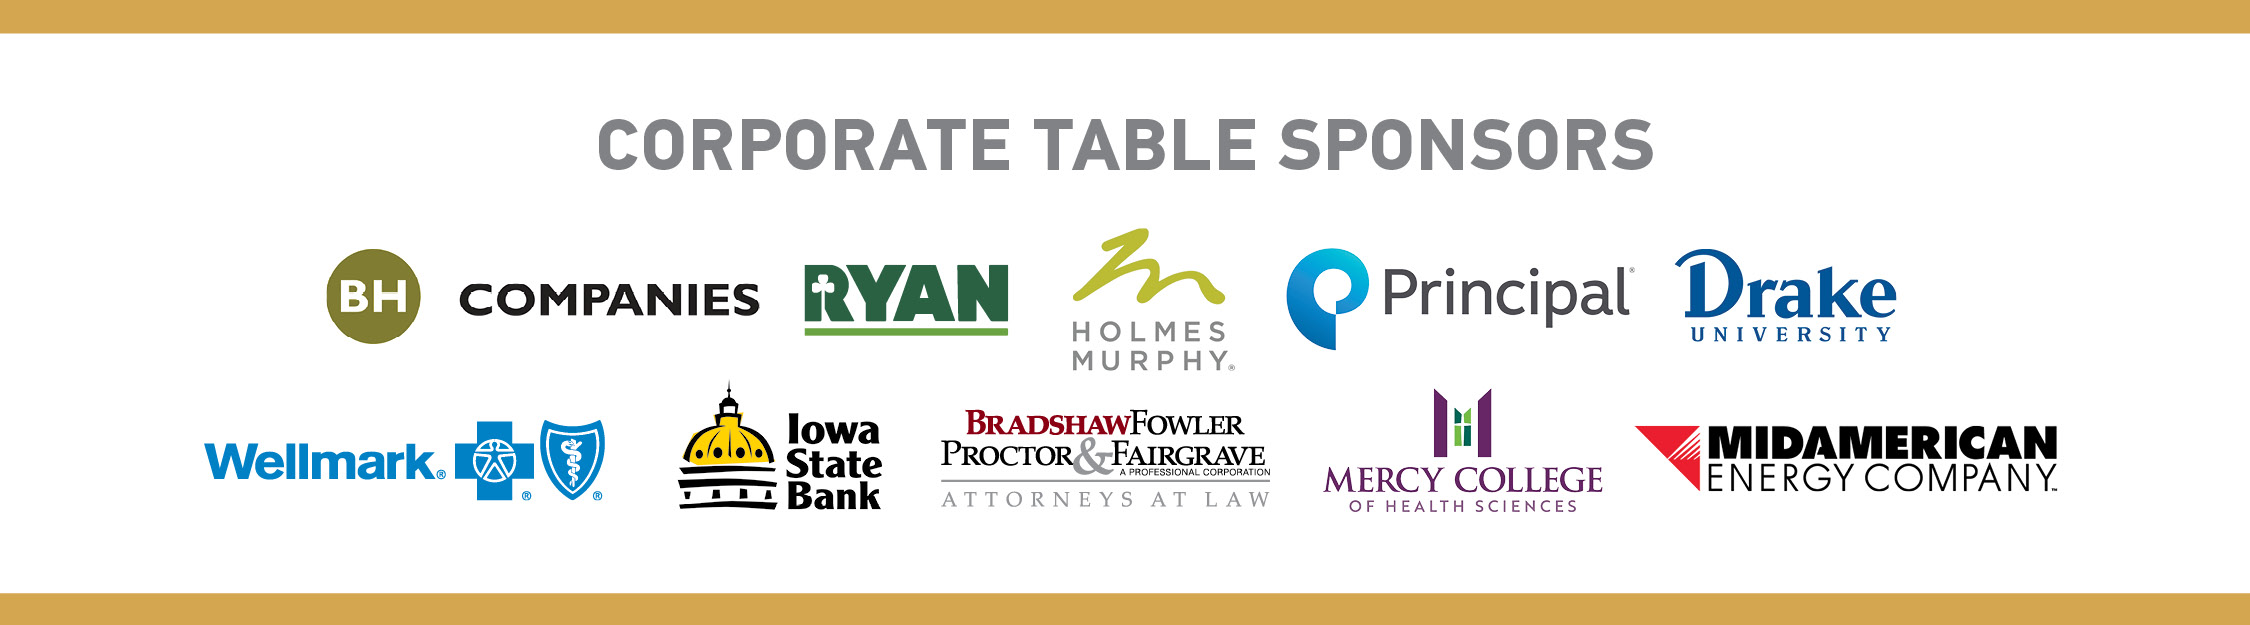 Corporate table sponsors